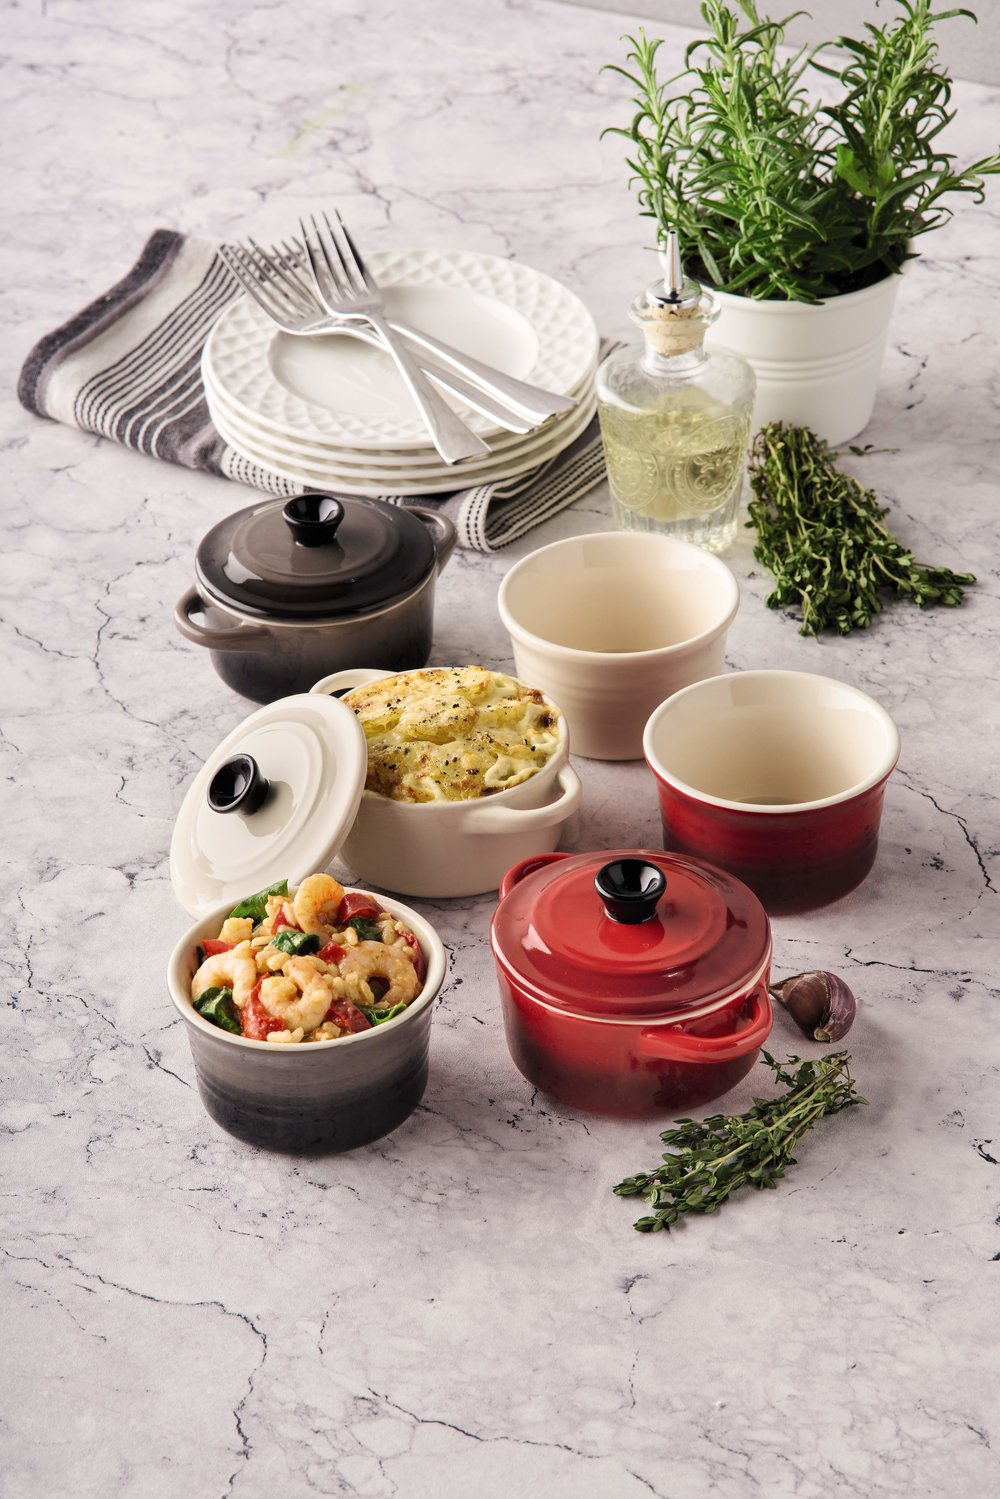 - Each item is suitable for use with all heat sources – gas, electric and induction hobs - and can be placed in ovens up to 200 degrees Celsius, making them ideal for creating those perfect autumnal stews and roasts.The range consists of a shallow and regular casserole dish, tagine, skillet, roasting dish, grill tray and frying pan. So, if you've been eyeing up luxury brand Le Creuset's colourful cast iron pieces, this collection is the perfect budget-friendly alternative. With the cheapest item only costing £25, purchasing this range could save you over £600 against its Le Creuset counterparts.